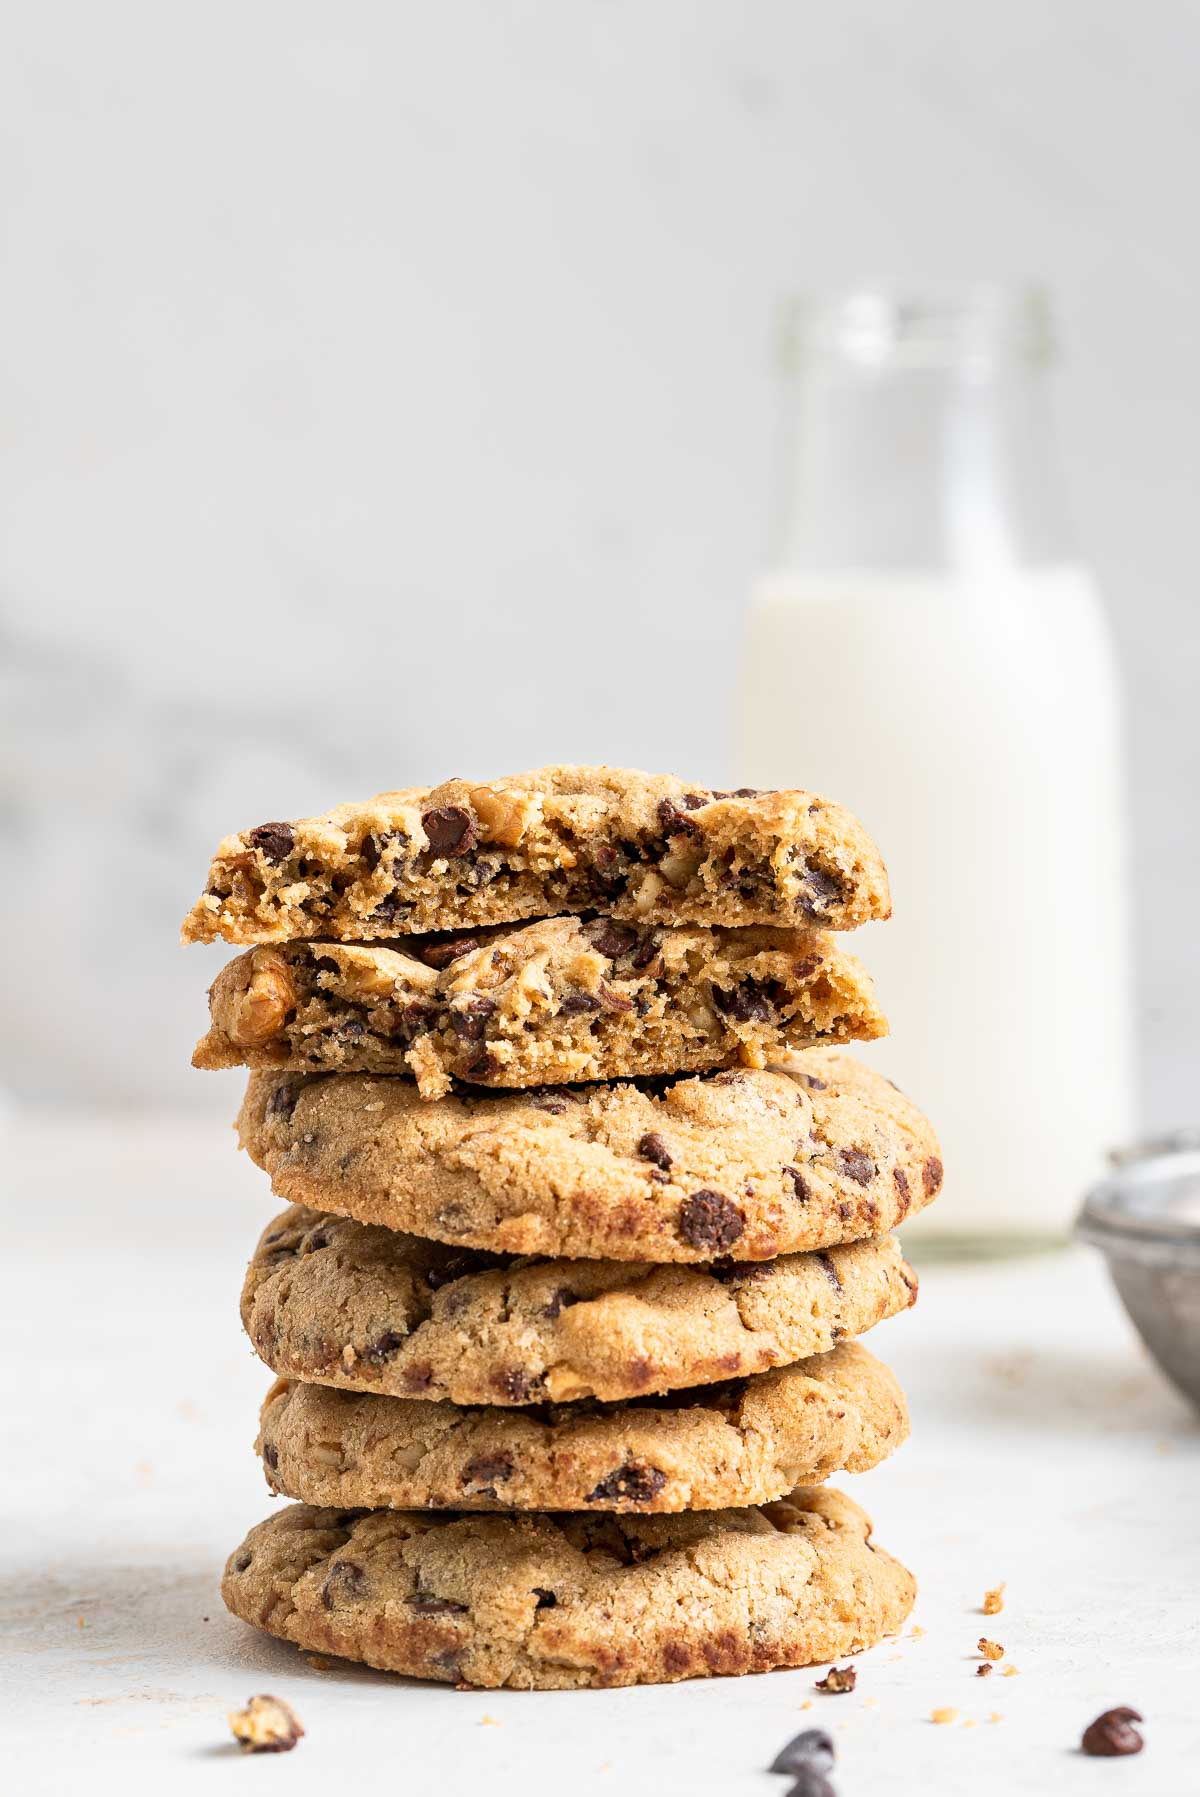 Stacked cookies with milk behind.